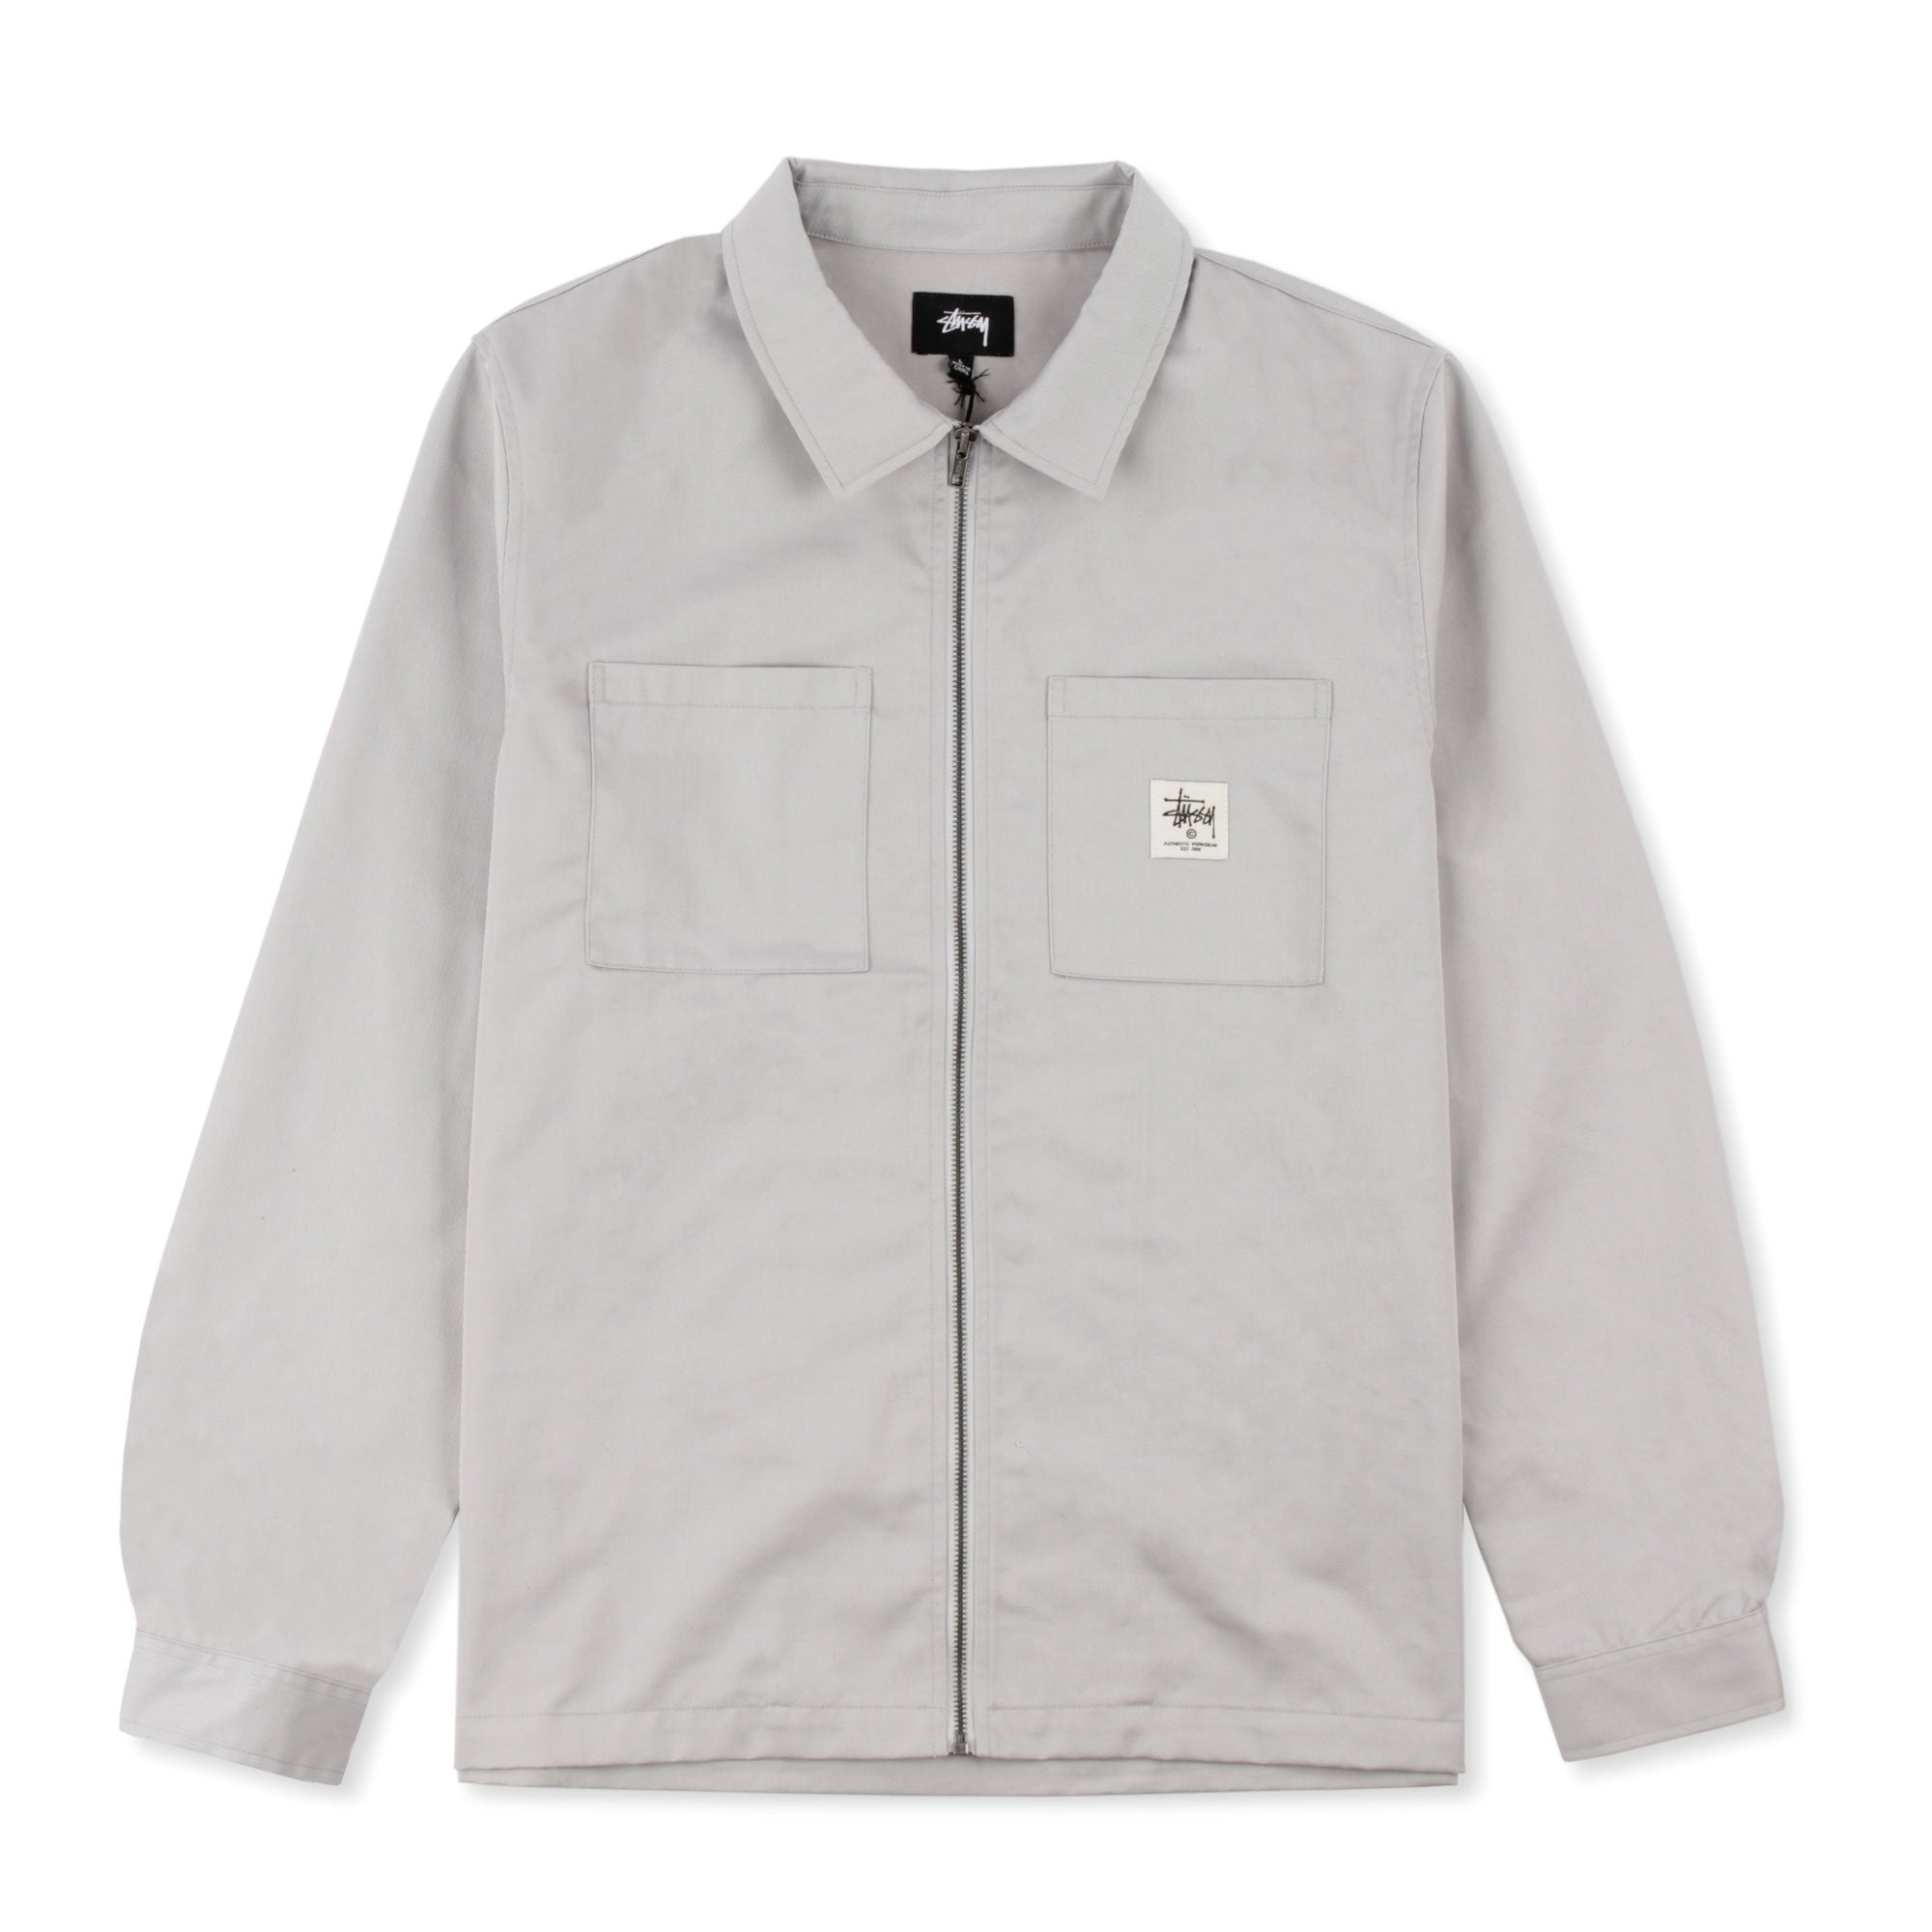 Stussy Workwear Zip Jacket Product Photo #1